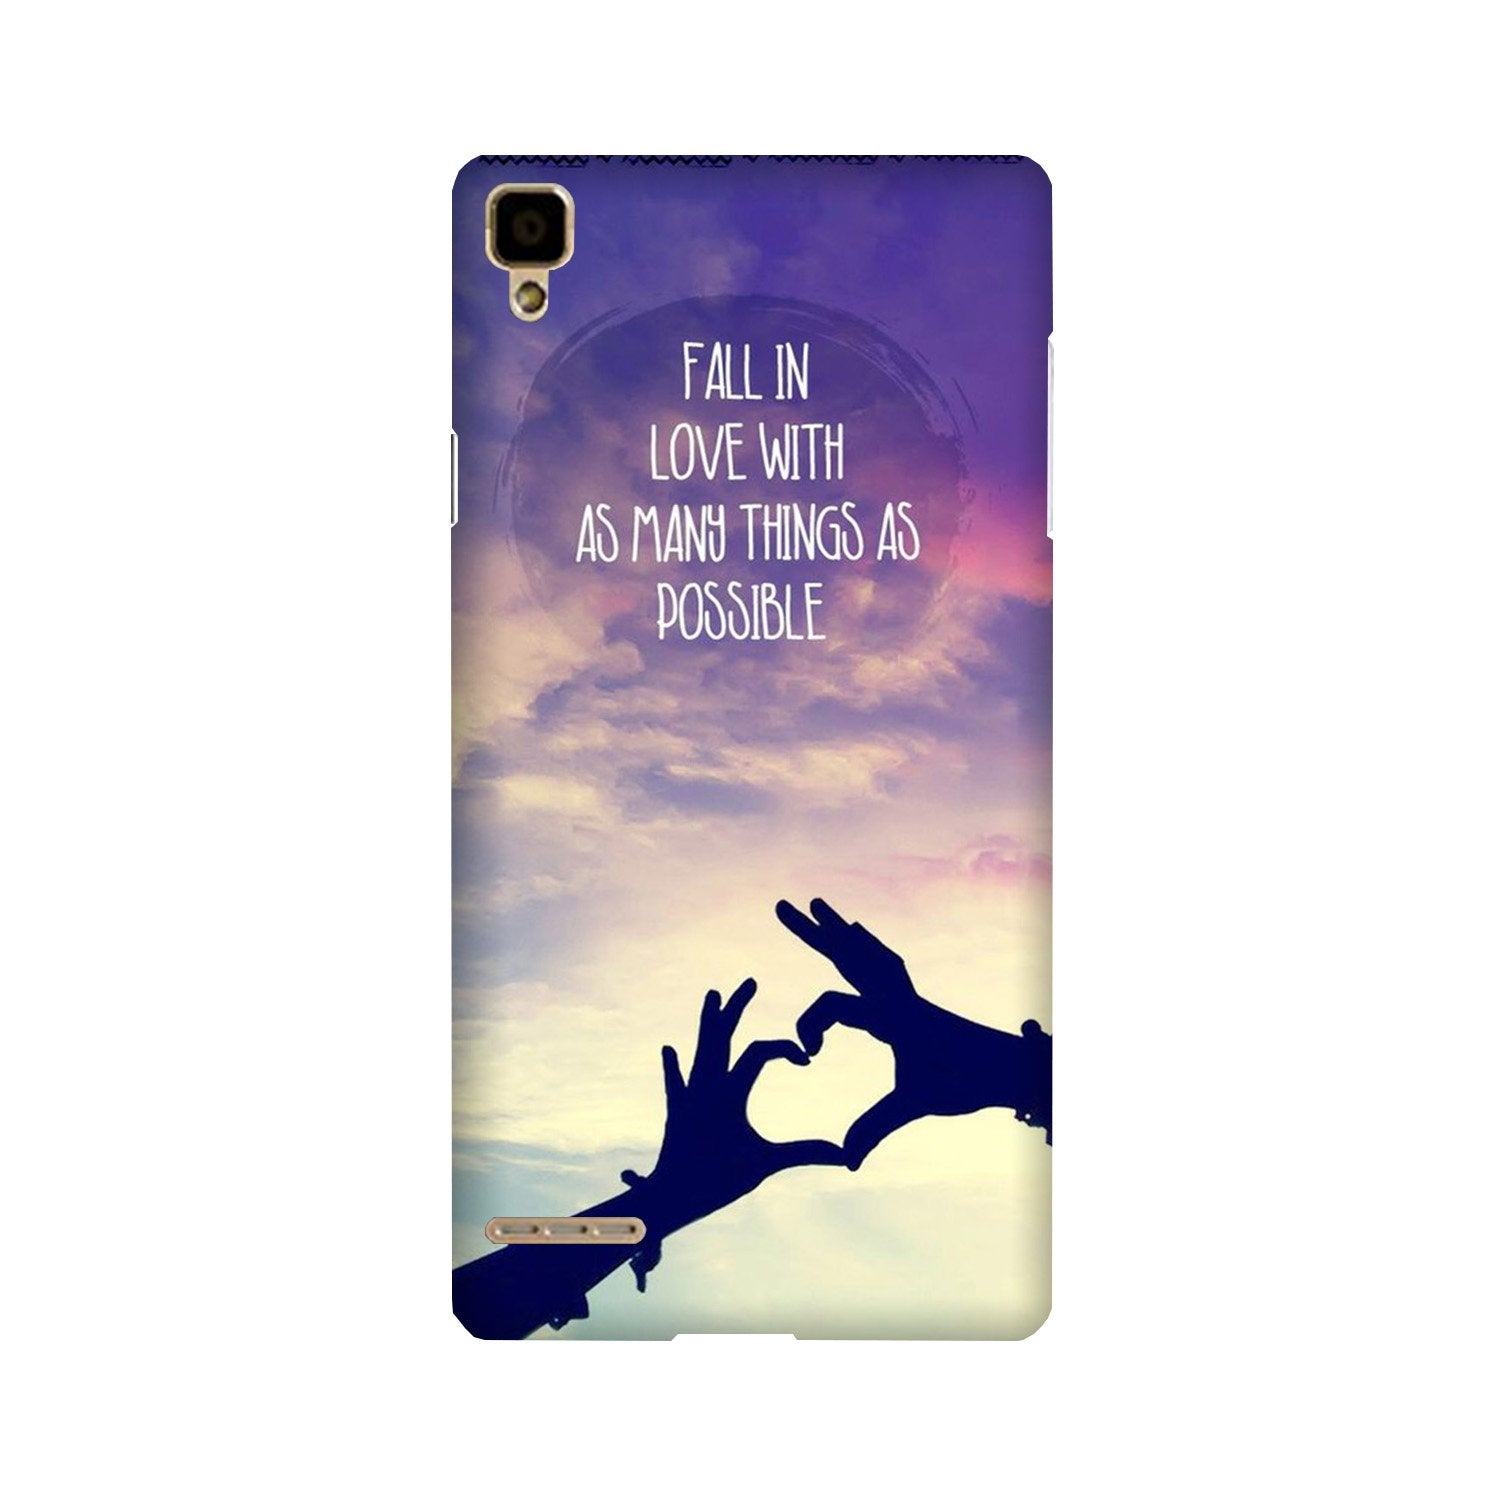 Fall in love Case for Oppo F1